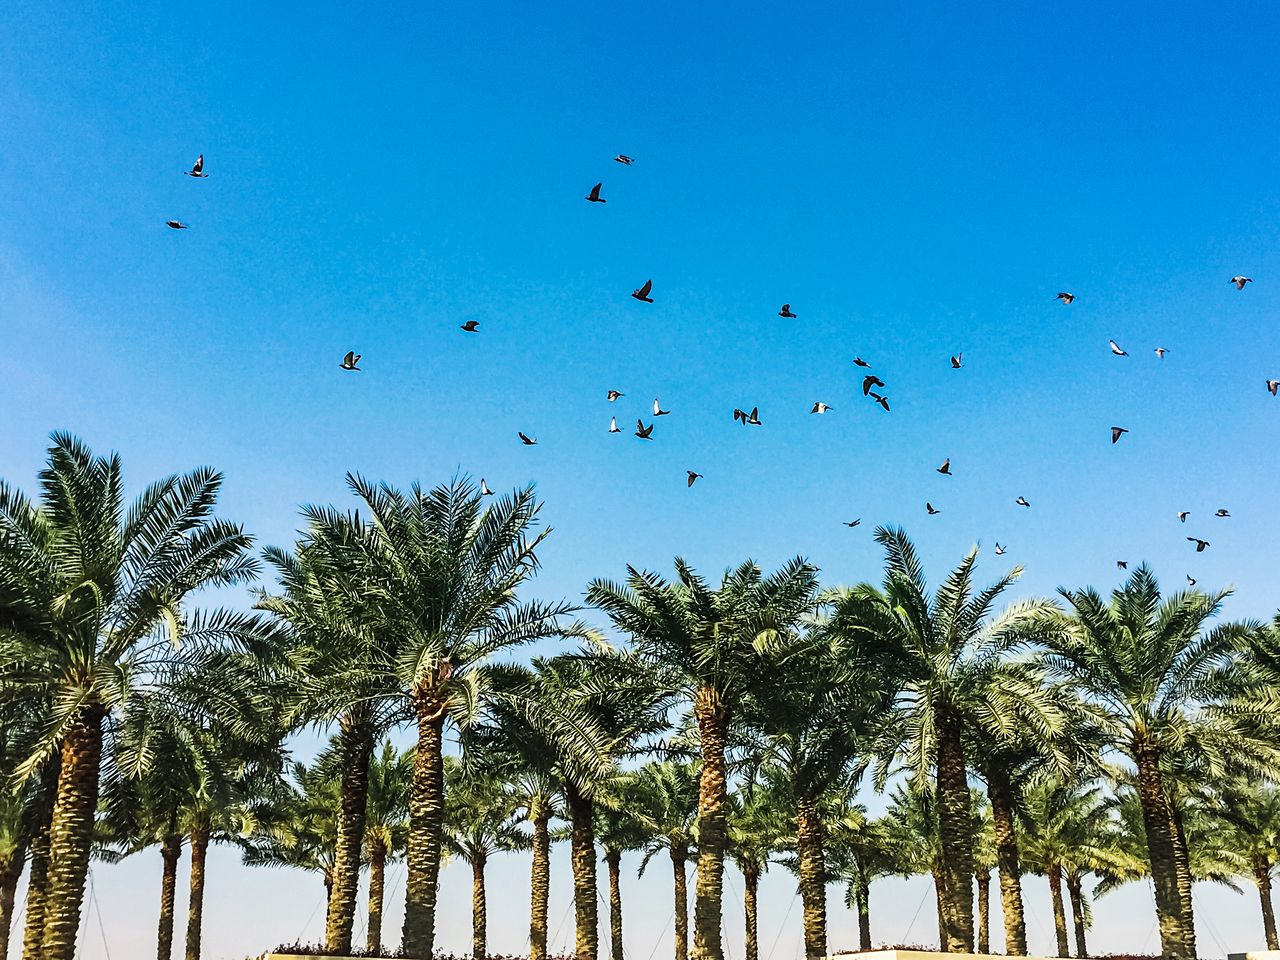 tree, sky, plant, tropical climate, large group of animals, palm tree, animal themes, animals in the wild, vertebrate, animal wildlife, animal, group of animals, bird, low angle view, nature, day, blue, no people, flock of birds, growth, outdoors